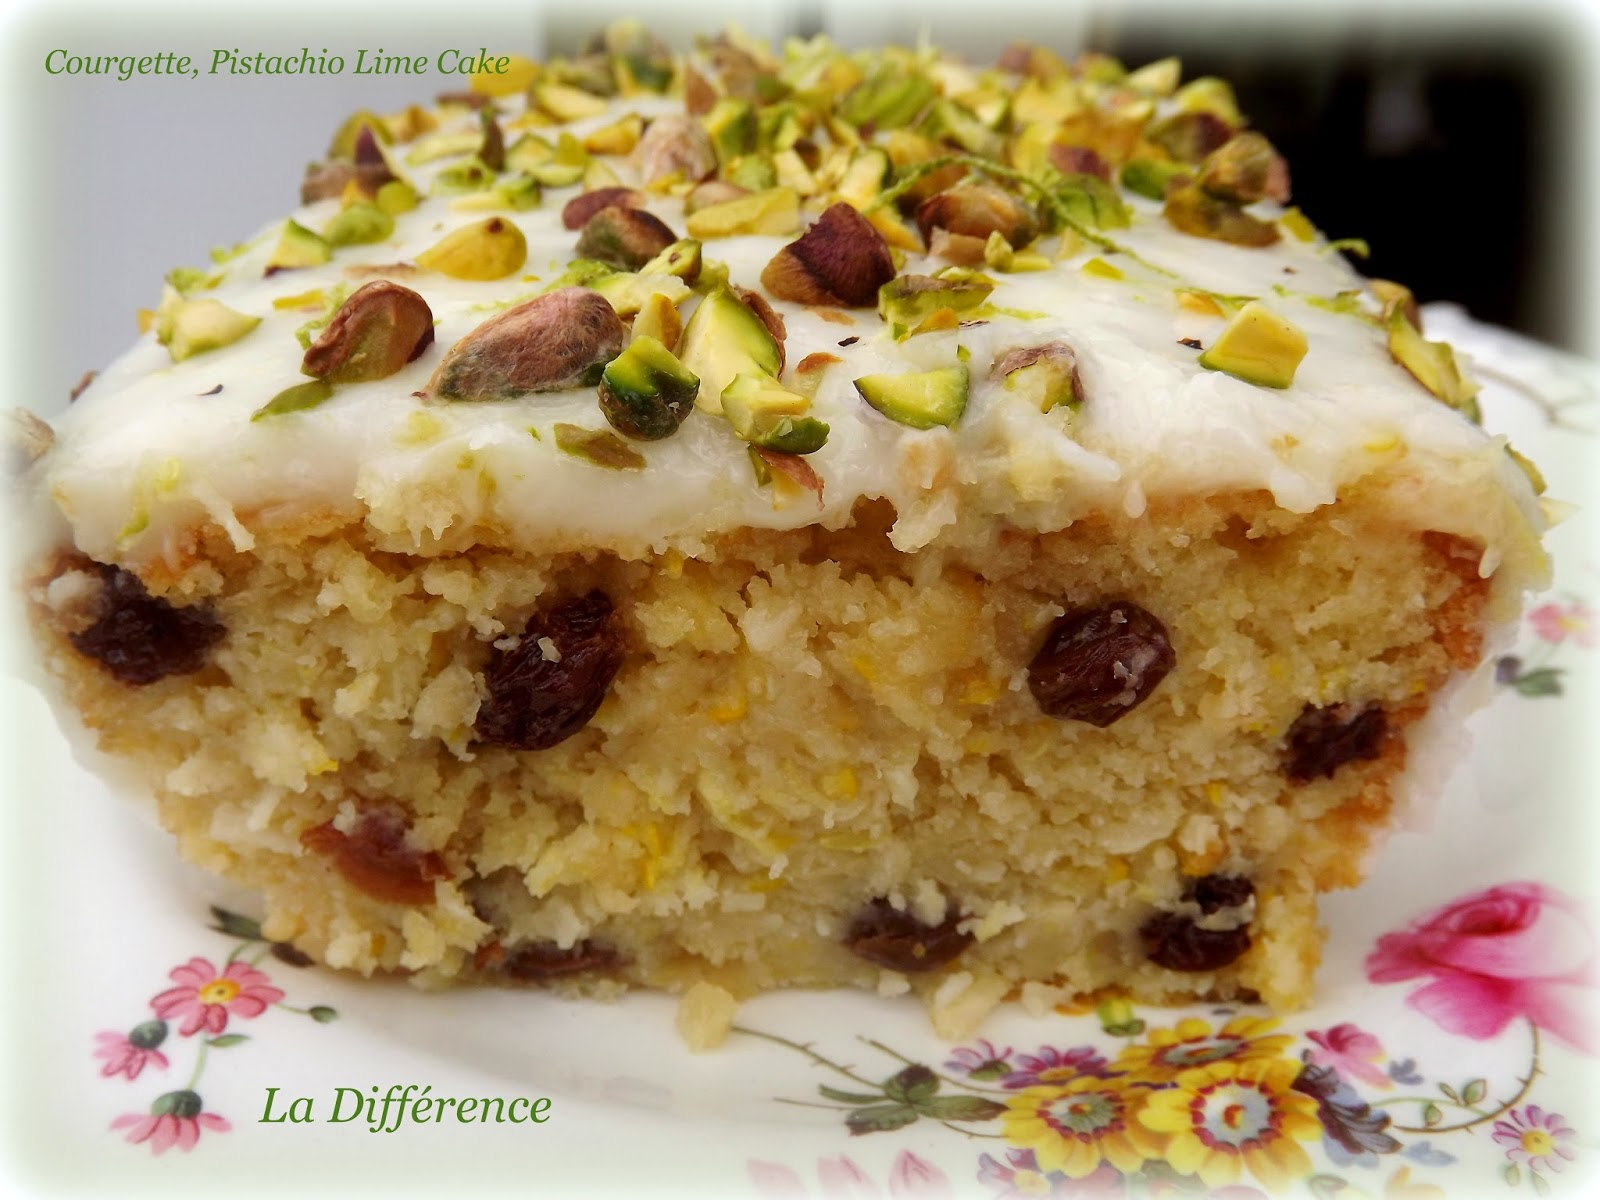 la diff rence courgette zucchini lime cake with pistachios. Black Bedroom Furniture Sets. Home Design Ideas